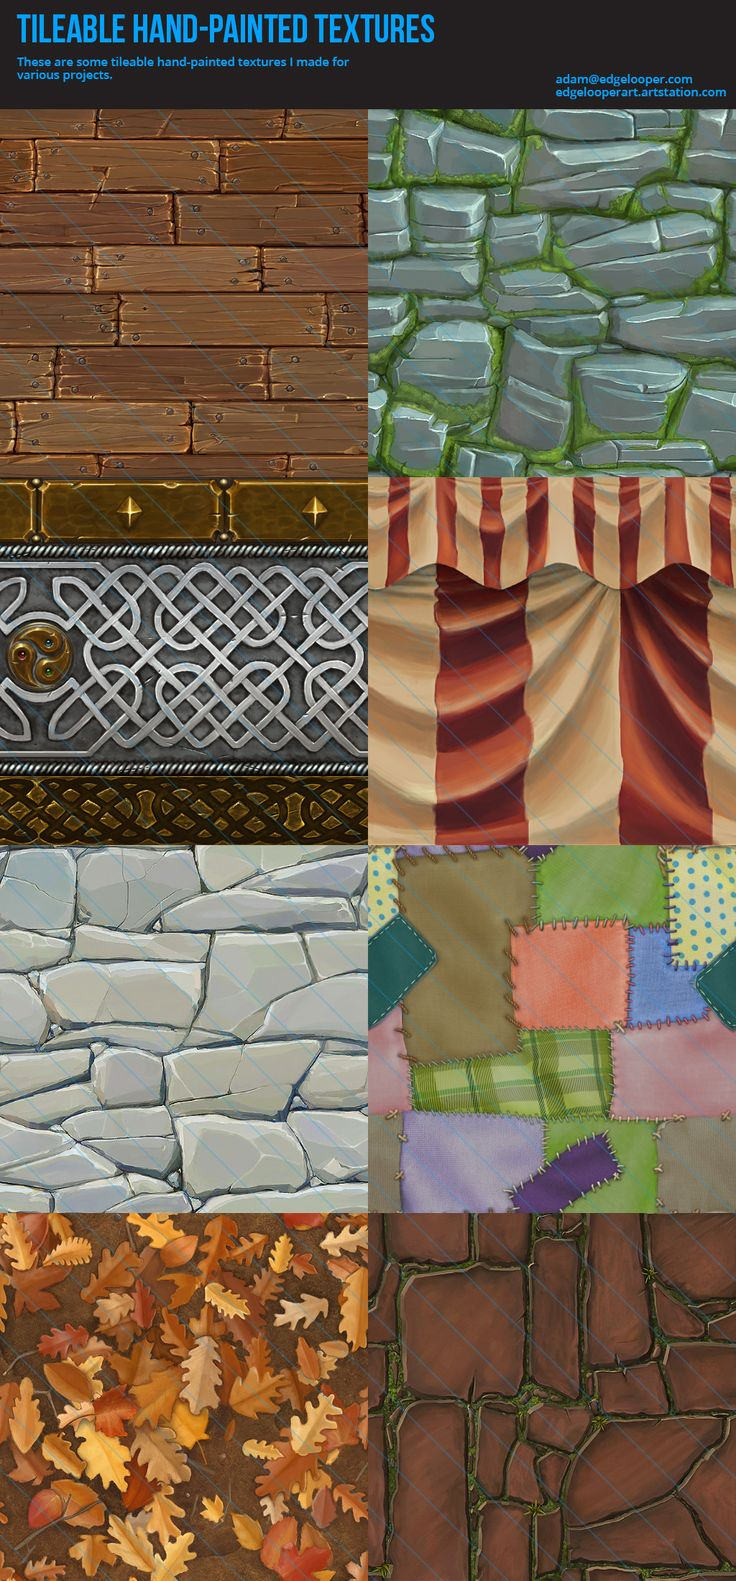 Hand painted textures done for various past projects.